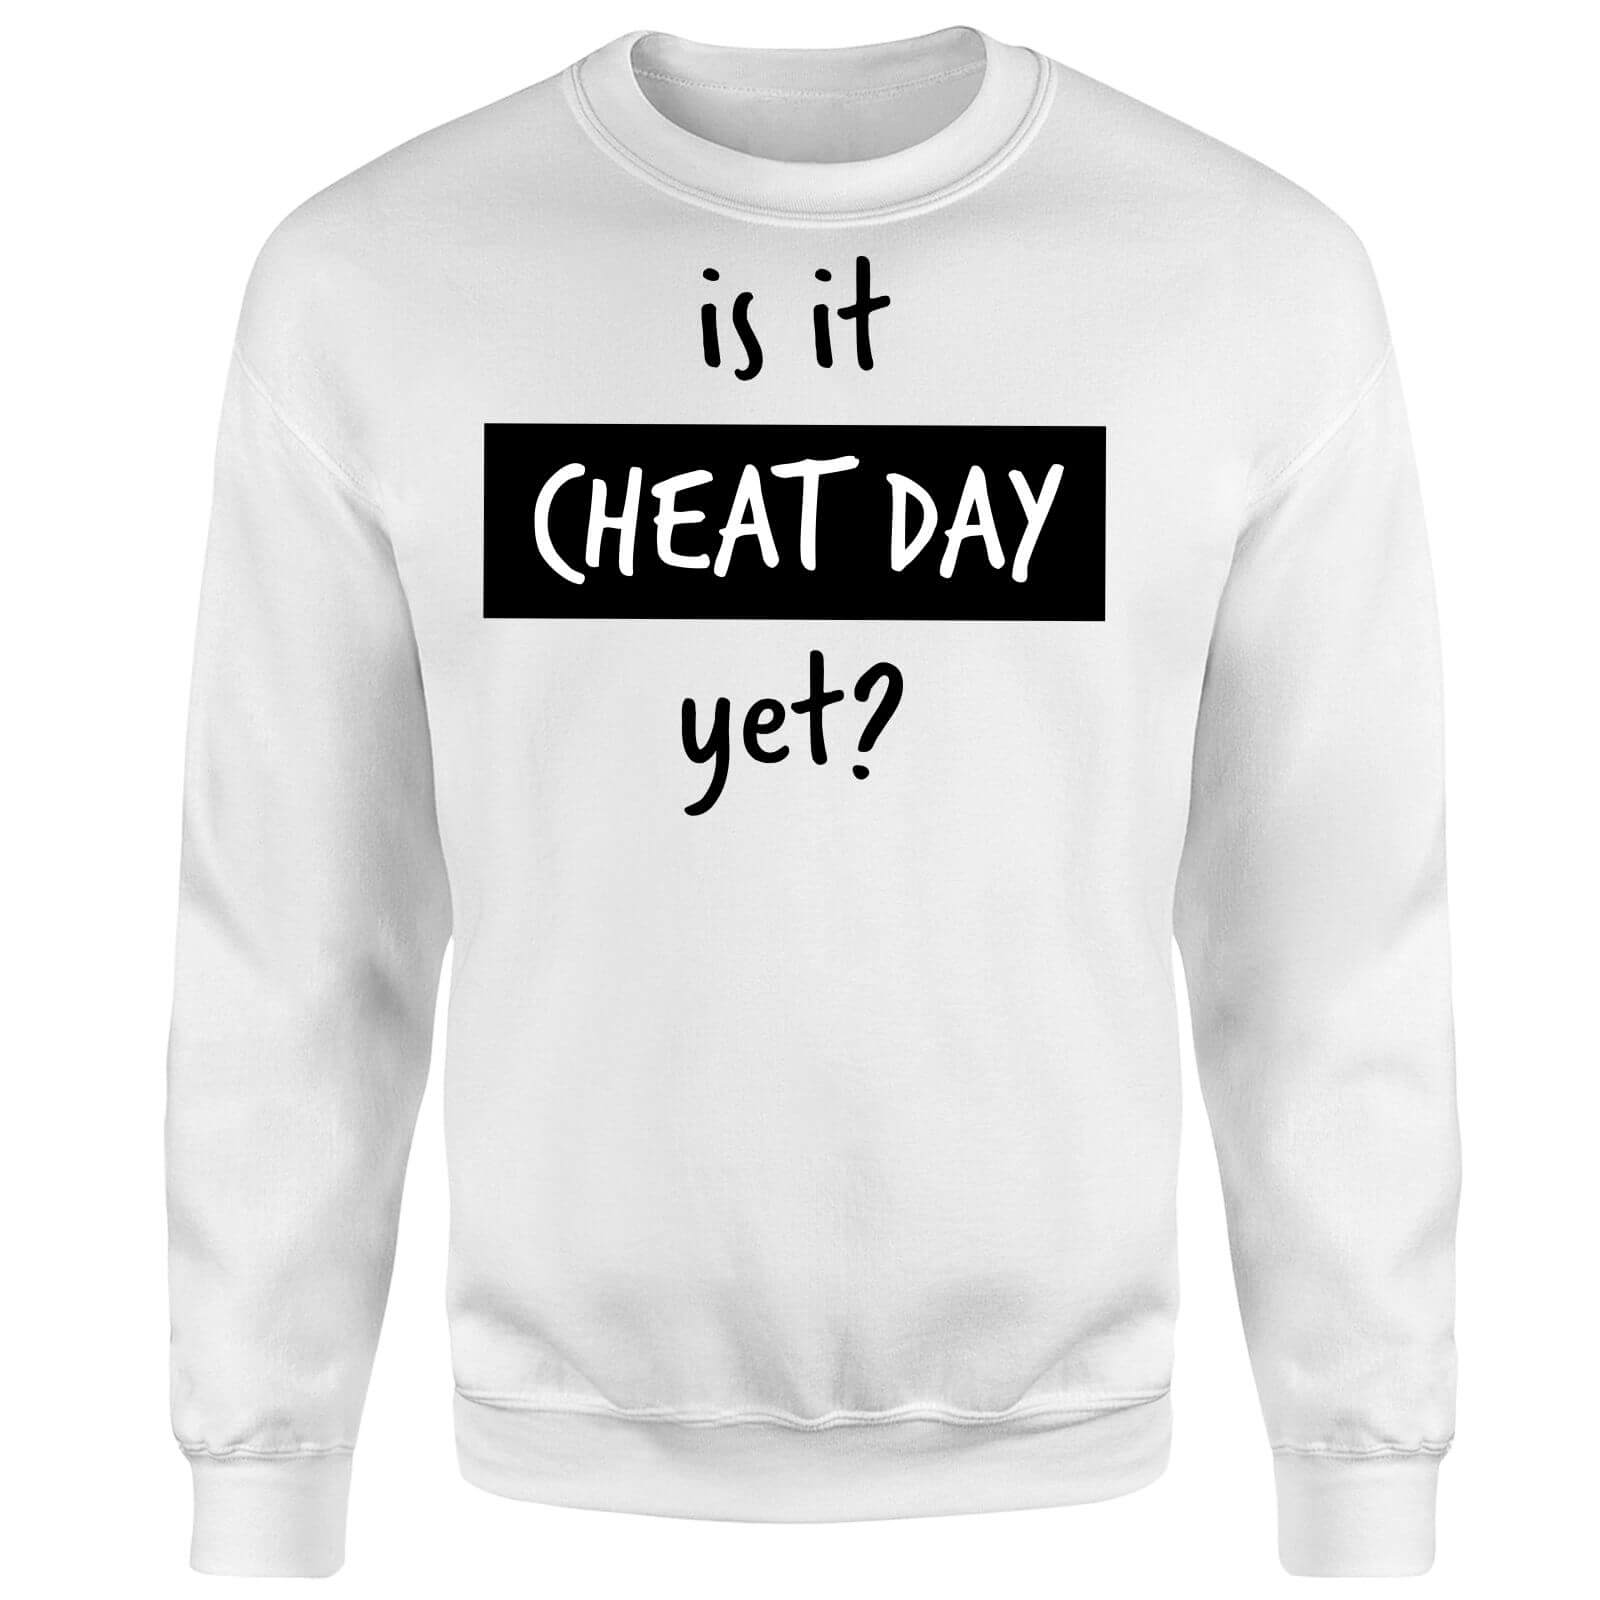 Is it Cheat Day Sweatshirt - White